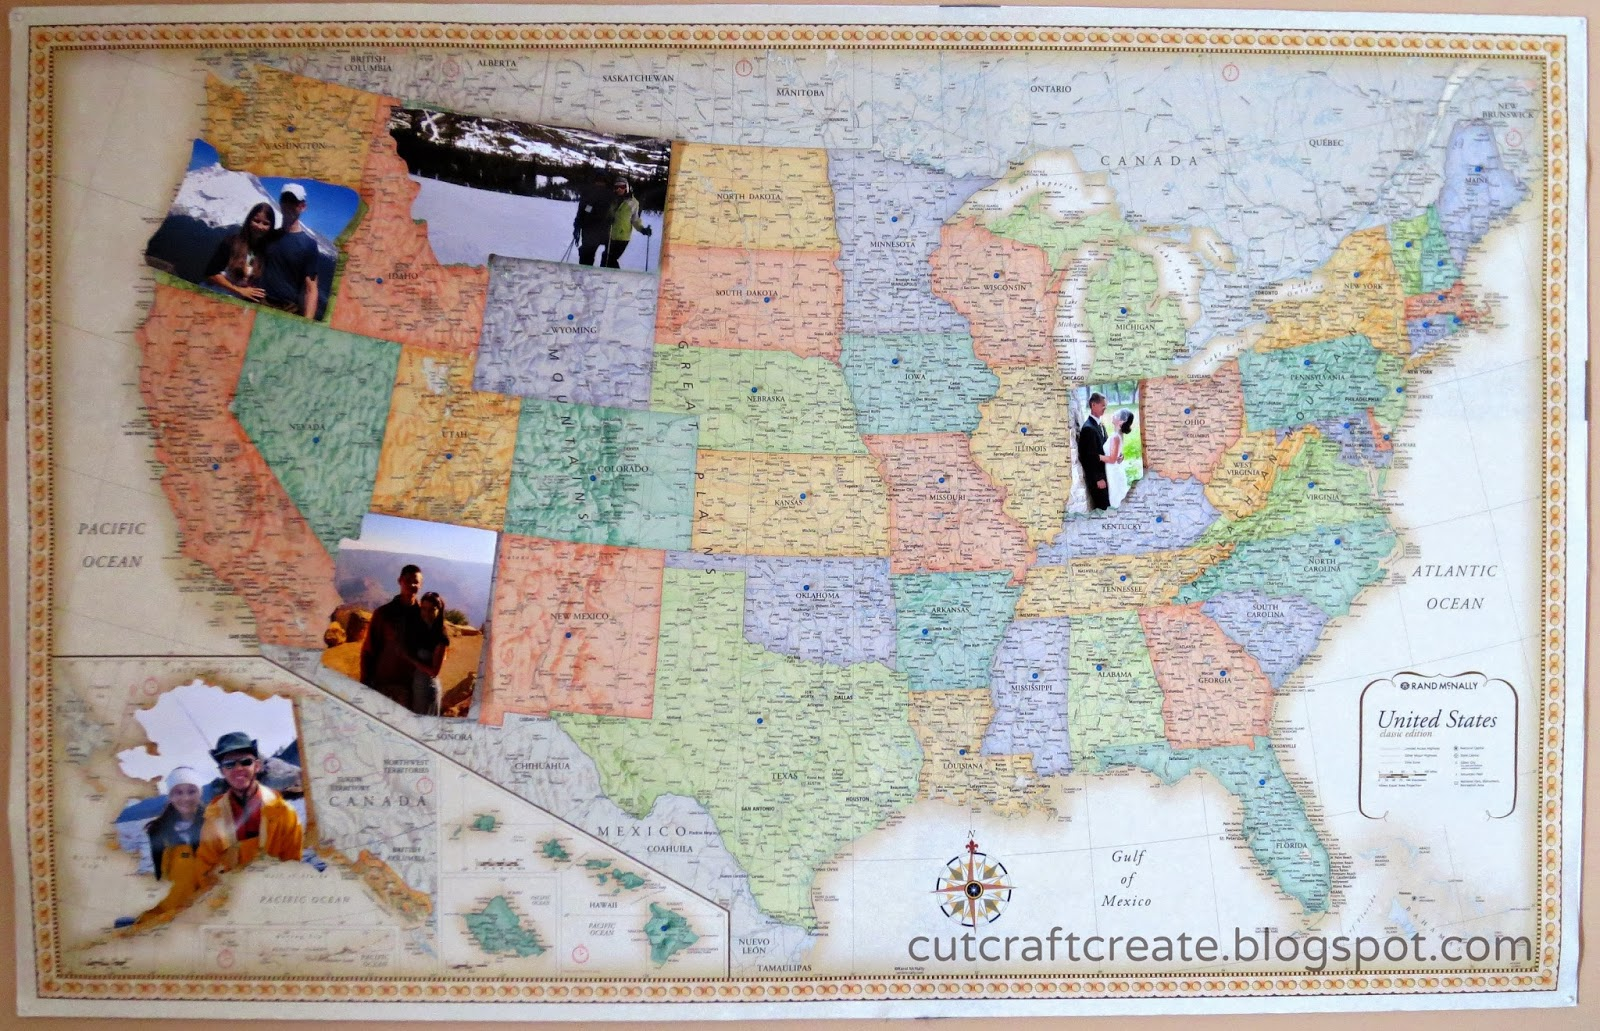 Cut Craft Create Personalized Photo Map for our Paper Anniversary – Travel Map Of Us